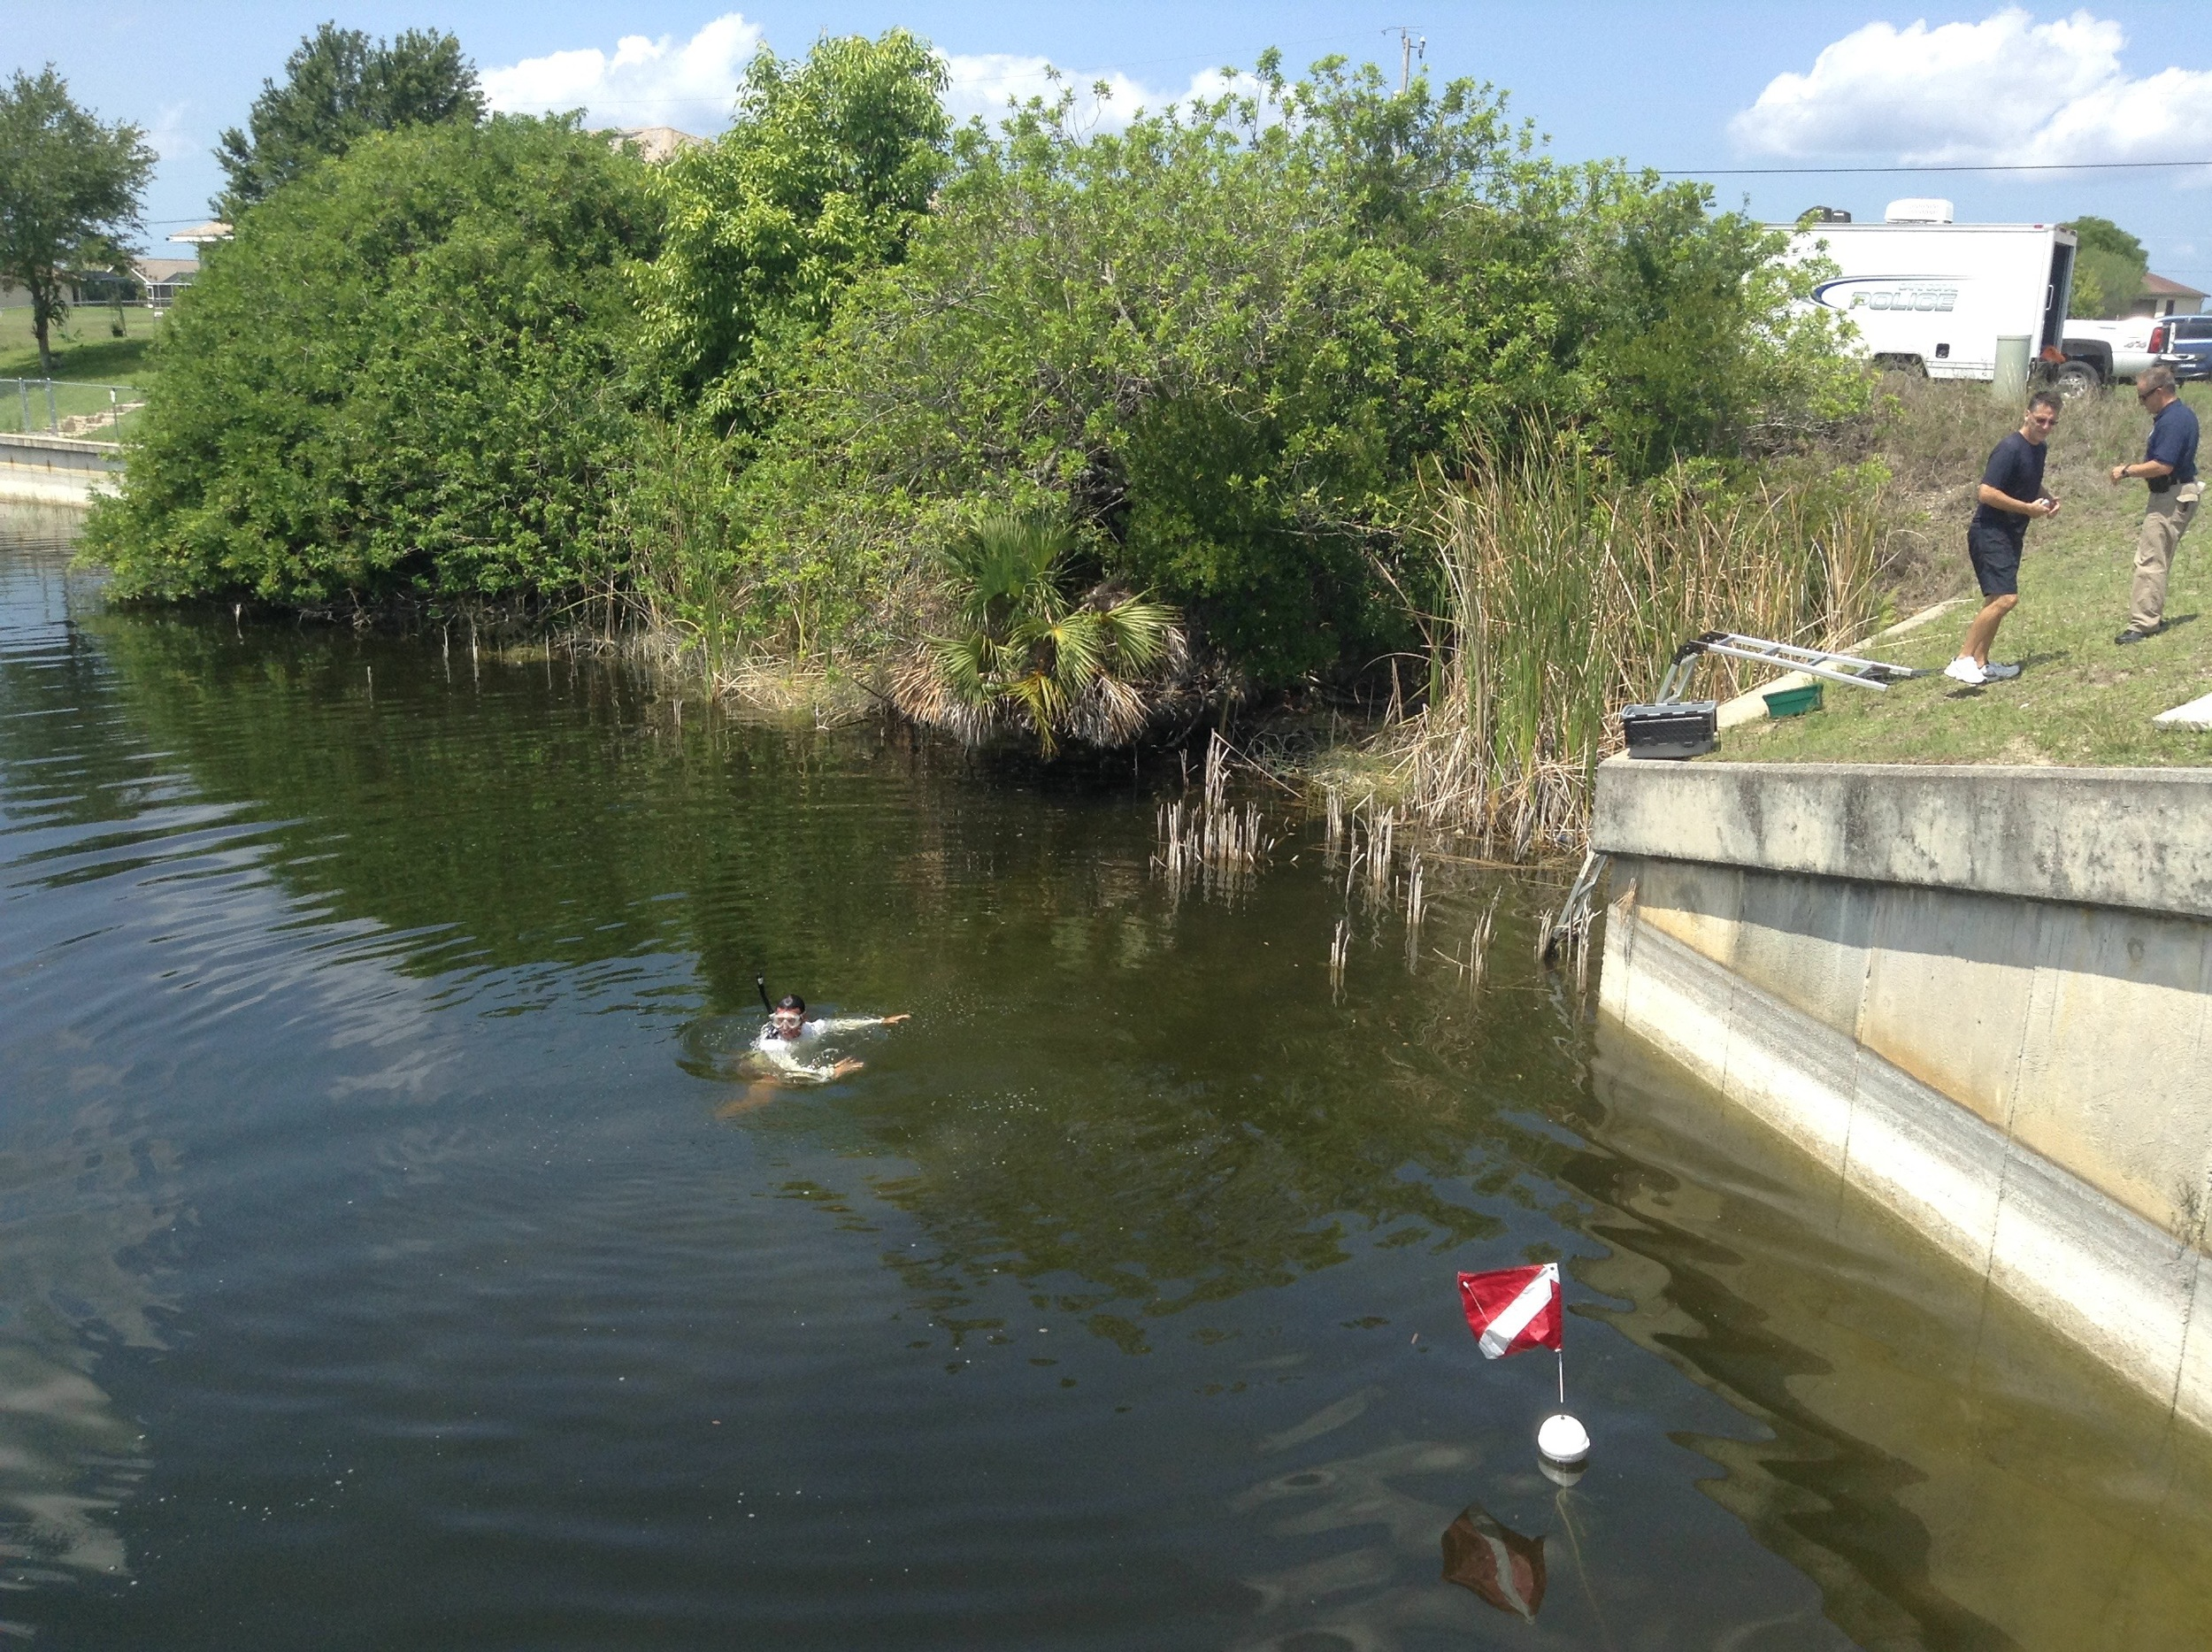 PHOTO: Officer Christian Munoz-Luna surveys an area in a canal where electronics were just located. (Photo Courtesy of Cape Coral Police Department)